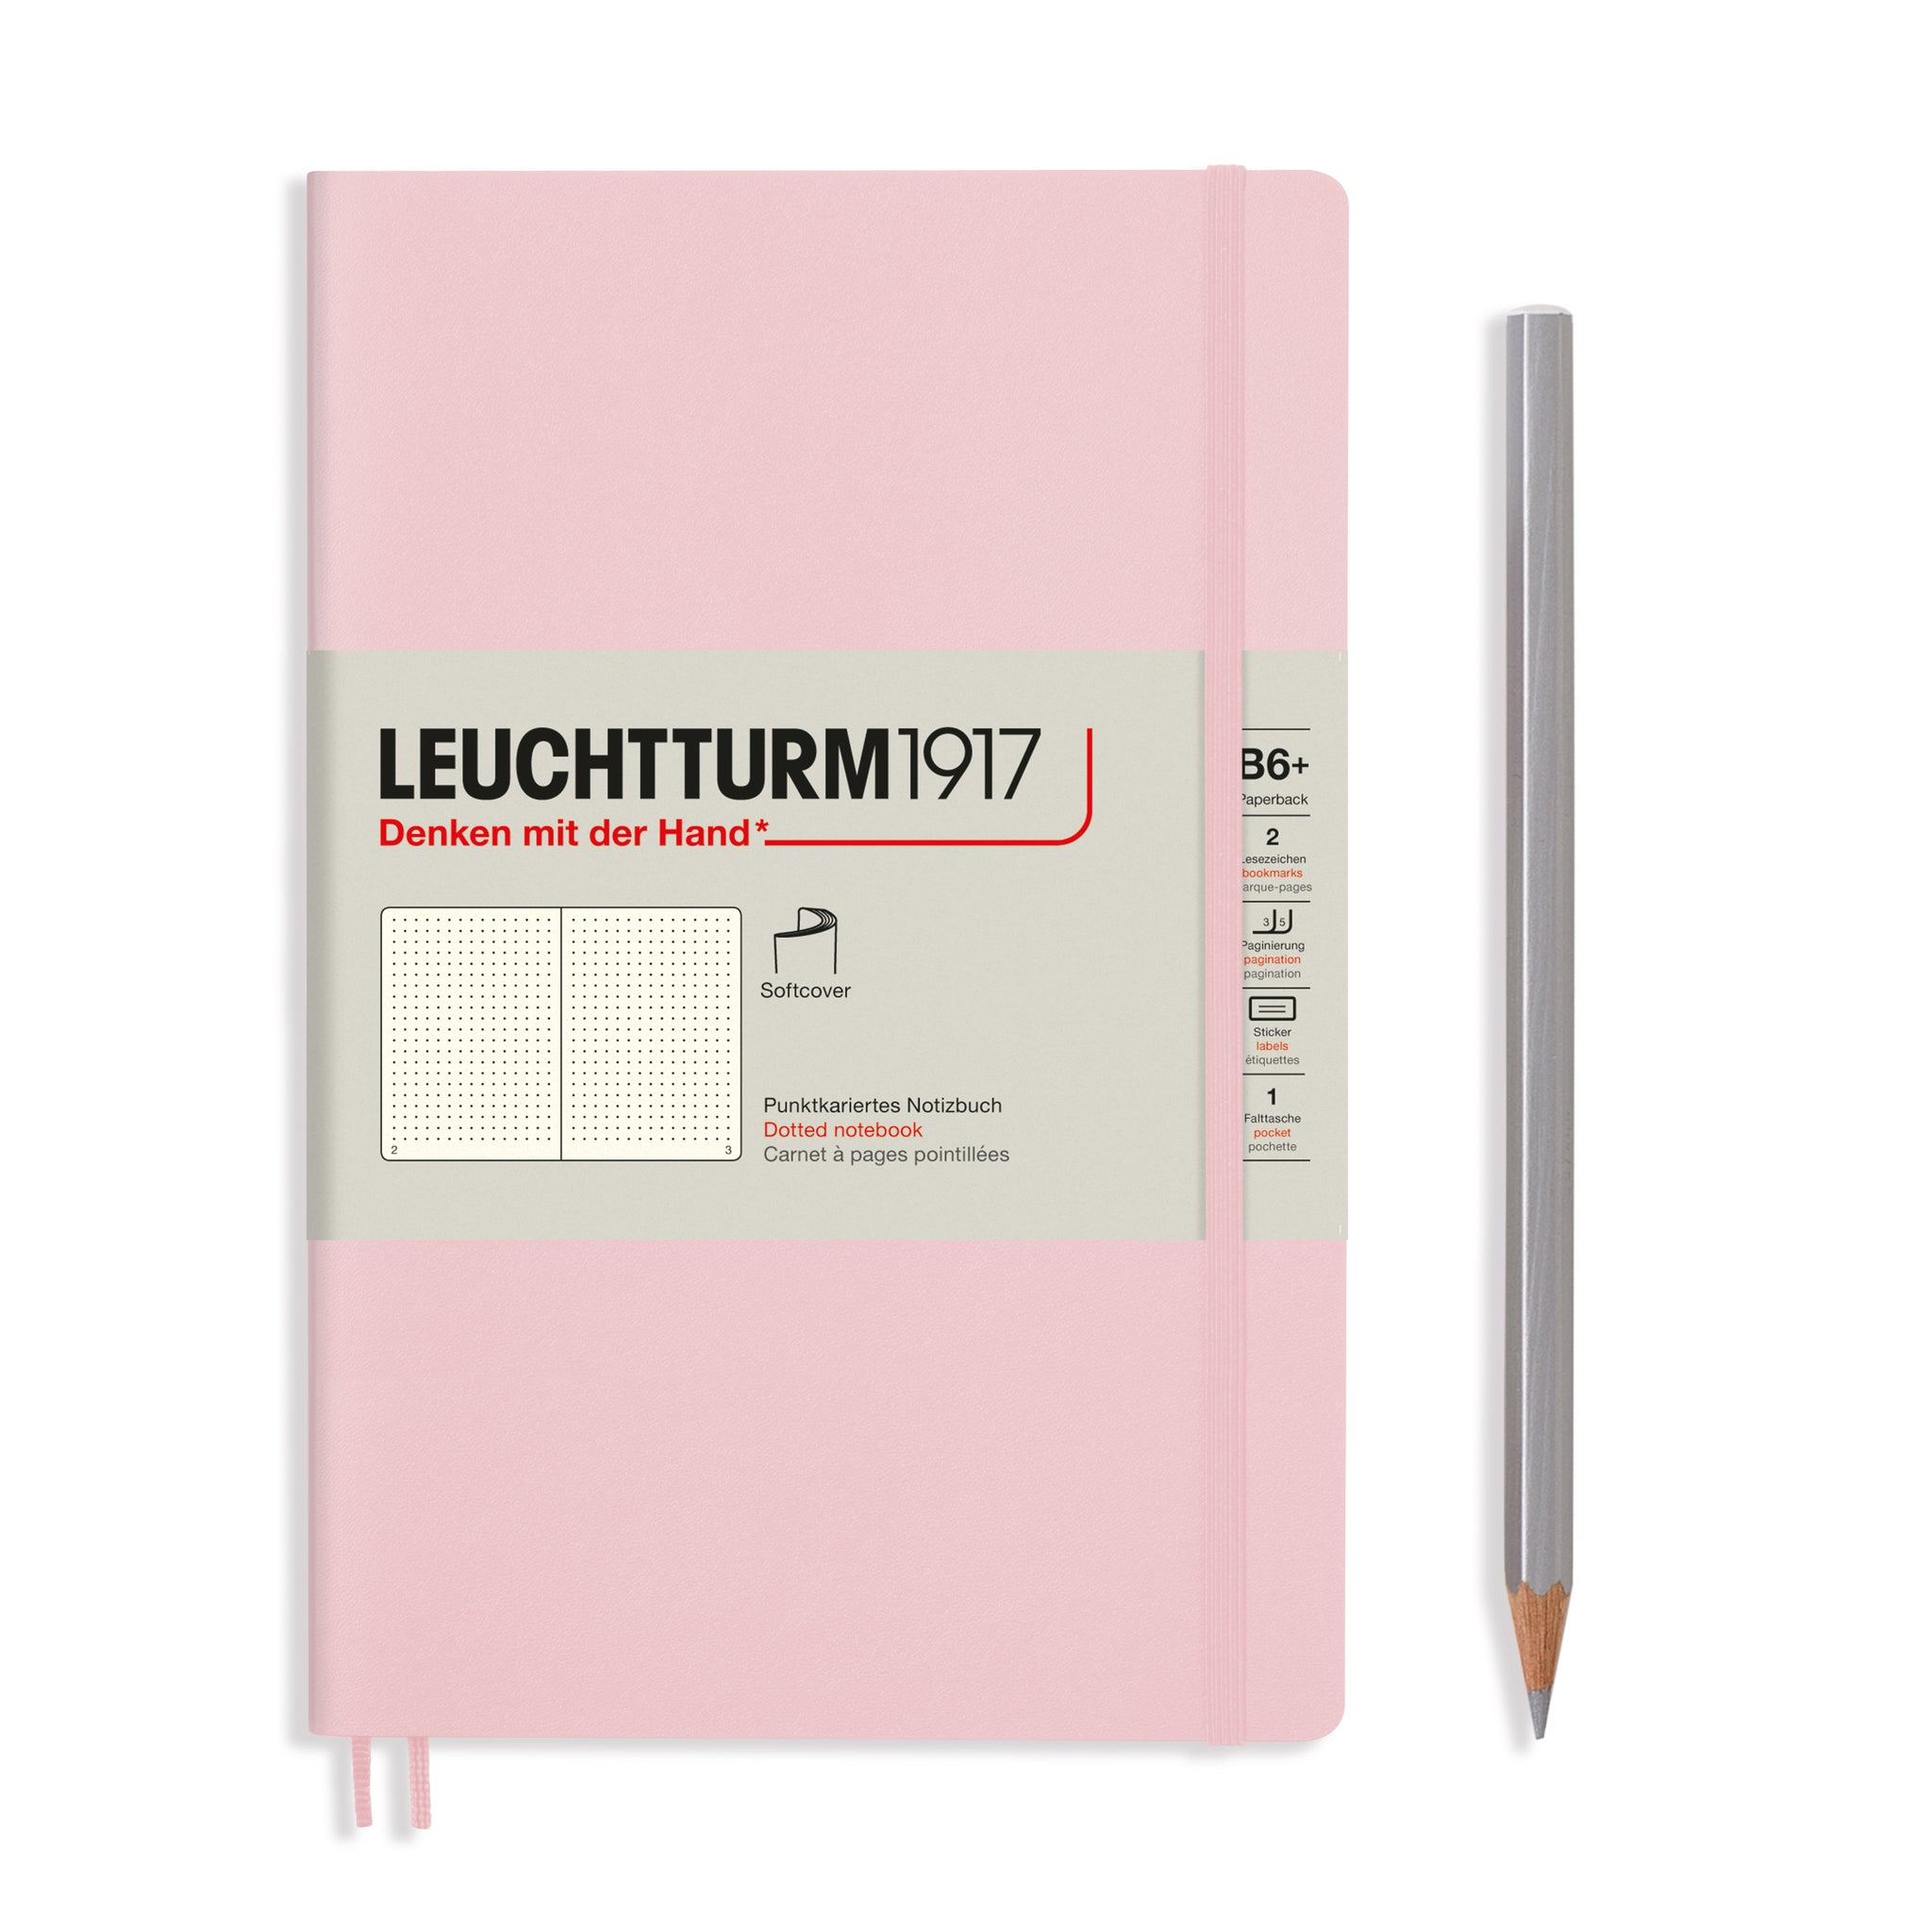 Leuchtturm1917 B6+ Softcover Notebook in Powder